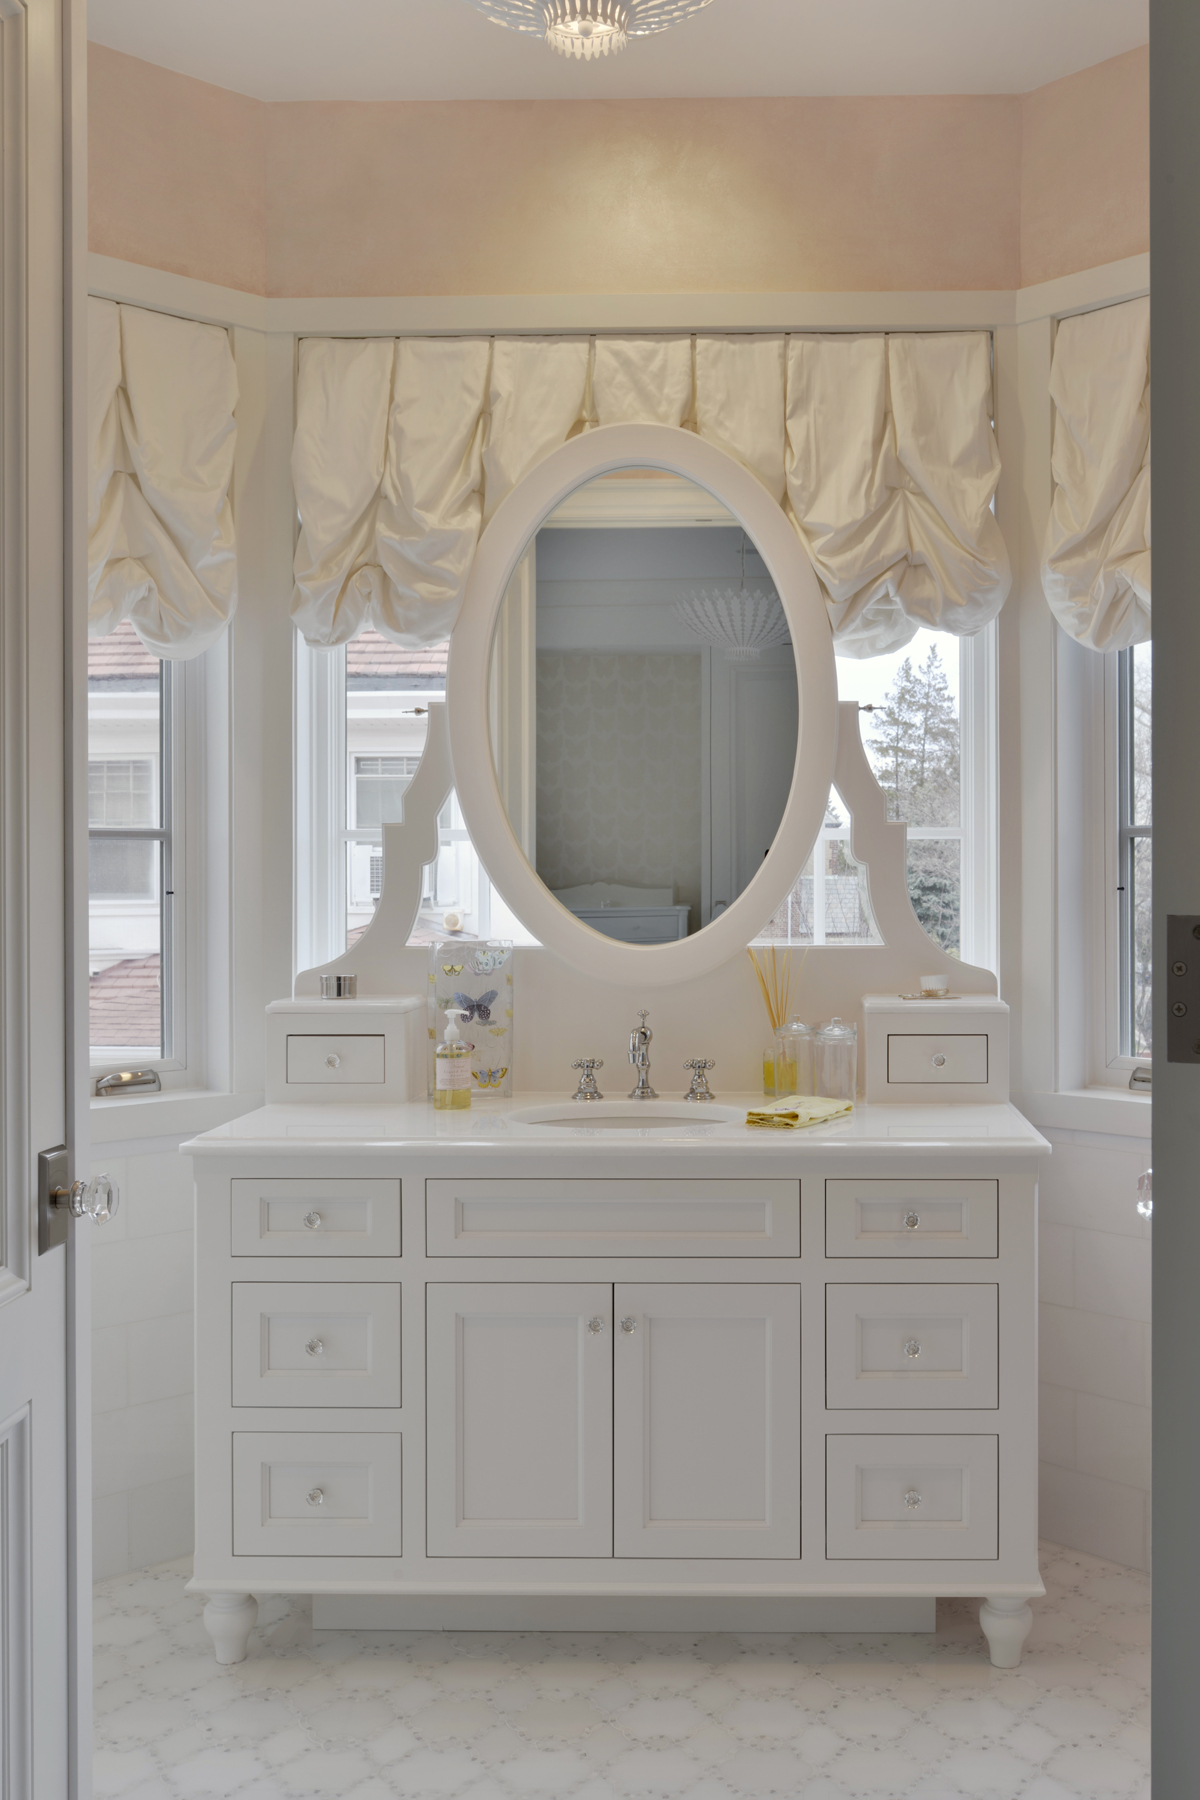 White and pale pink girl's bathroom features white balloon shades and a custom white painted built-in vanity by Bilotta Cabinetry with crystal door hardware and an oval mirror. Design by Tom Vecchio of Bilotta Kitchens.